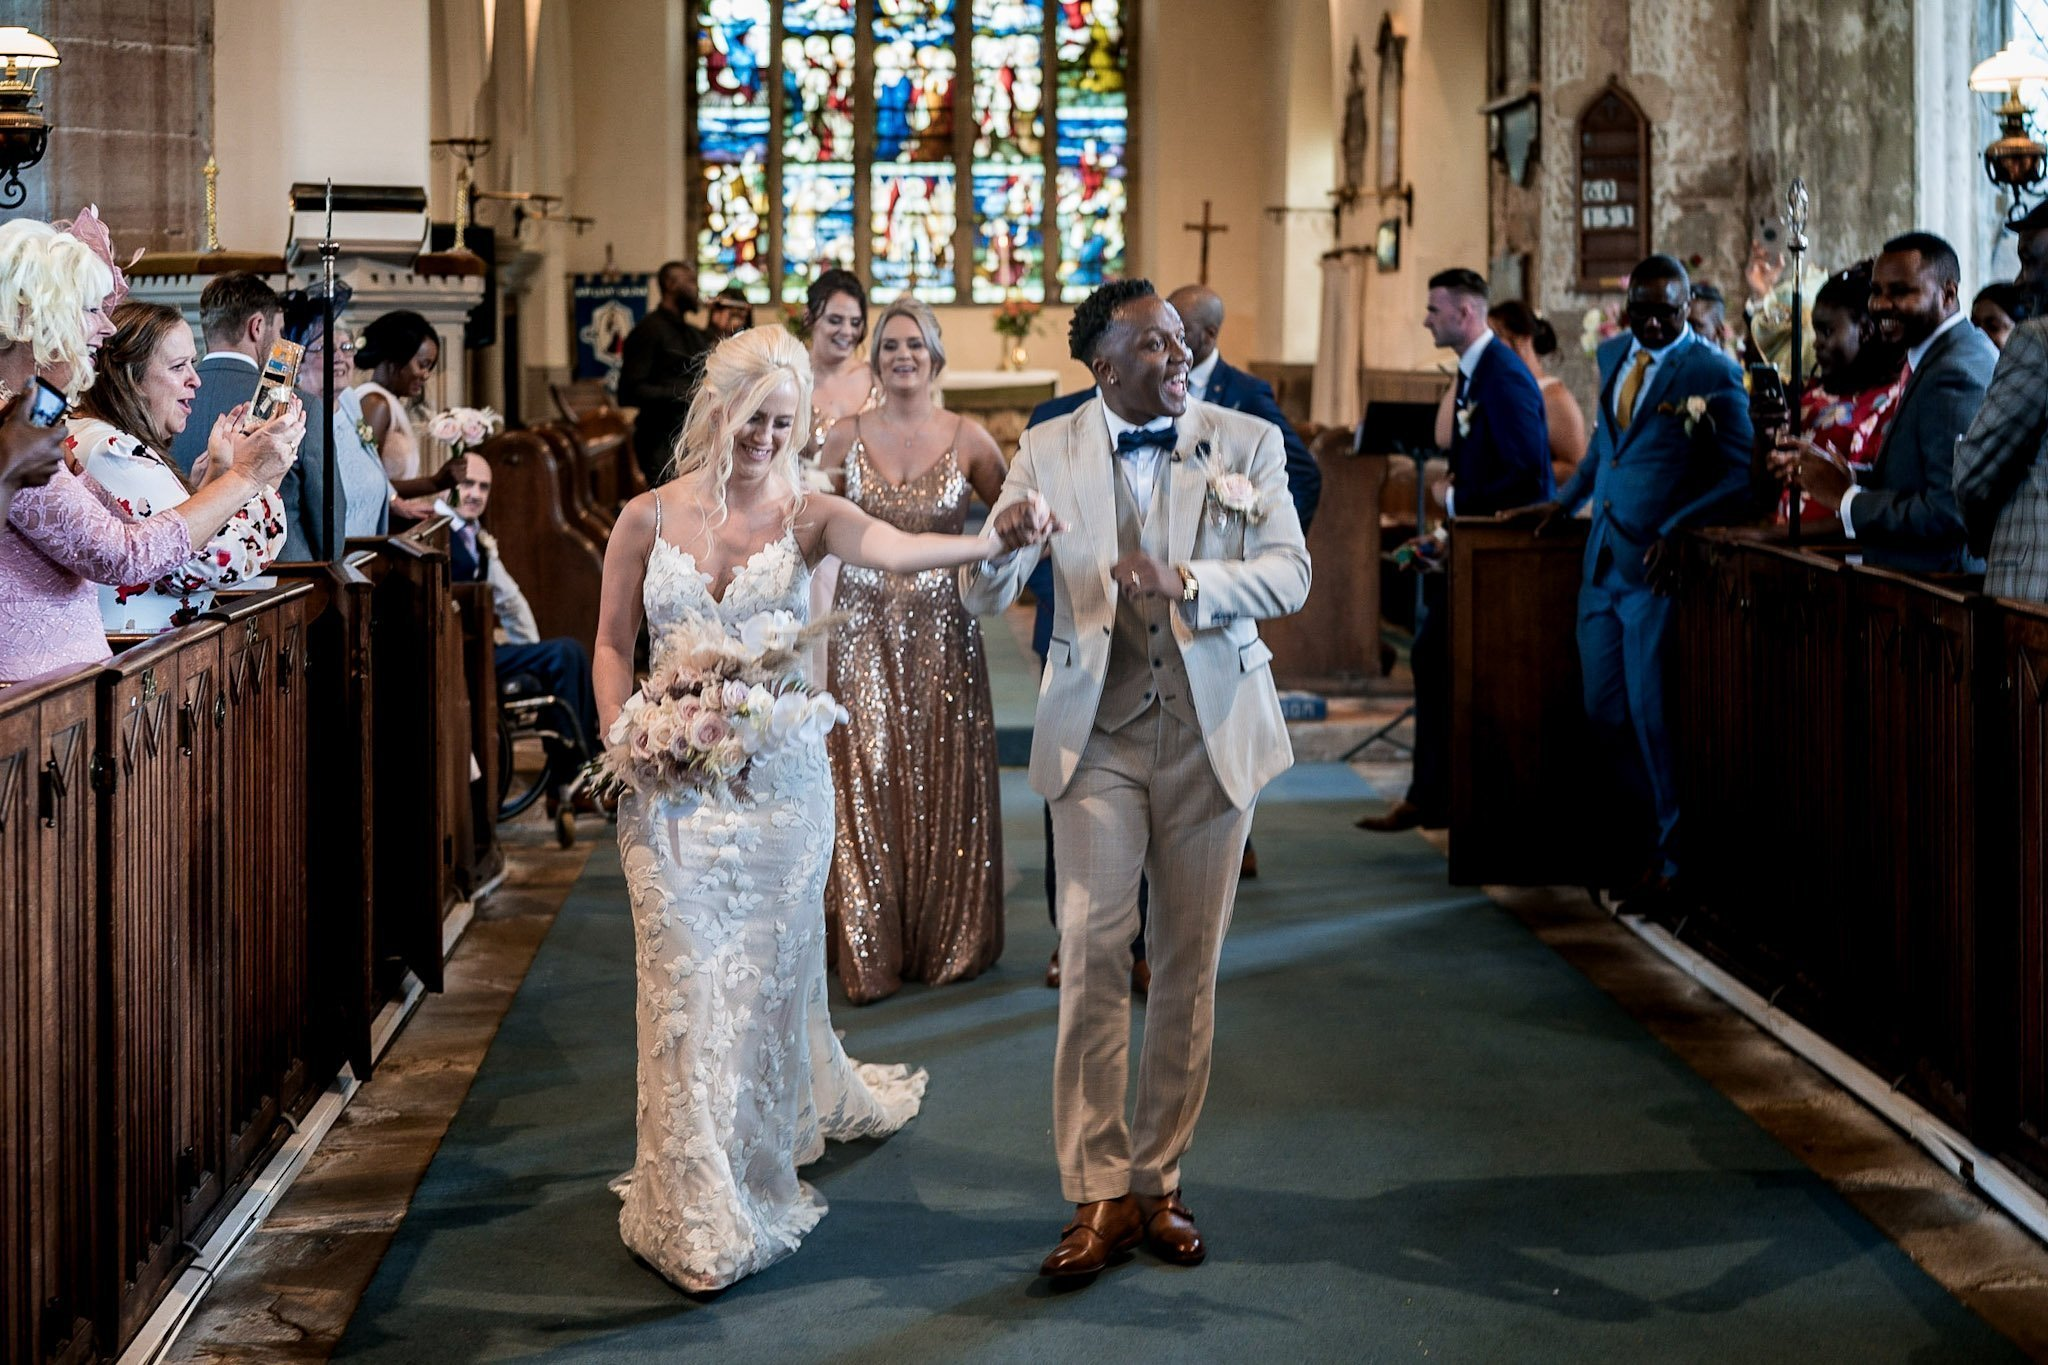 Your Favourite Frame YFFUK Mwasuku St Michaels Church Appleby Magna bride and groom walking back down the aisle having a little groove to themselves